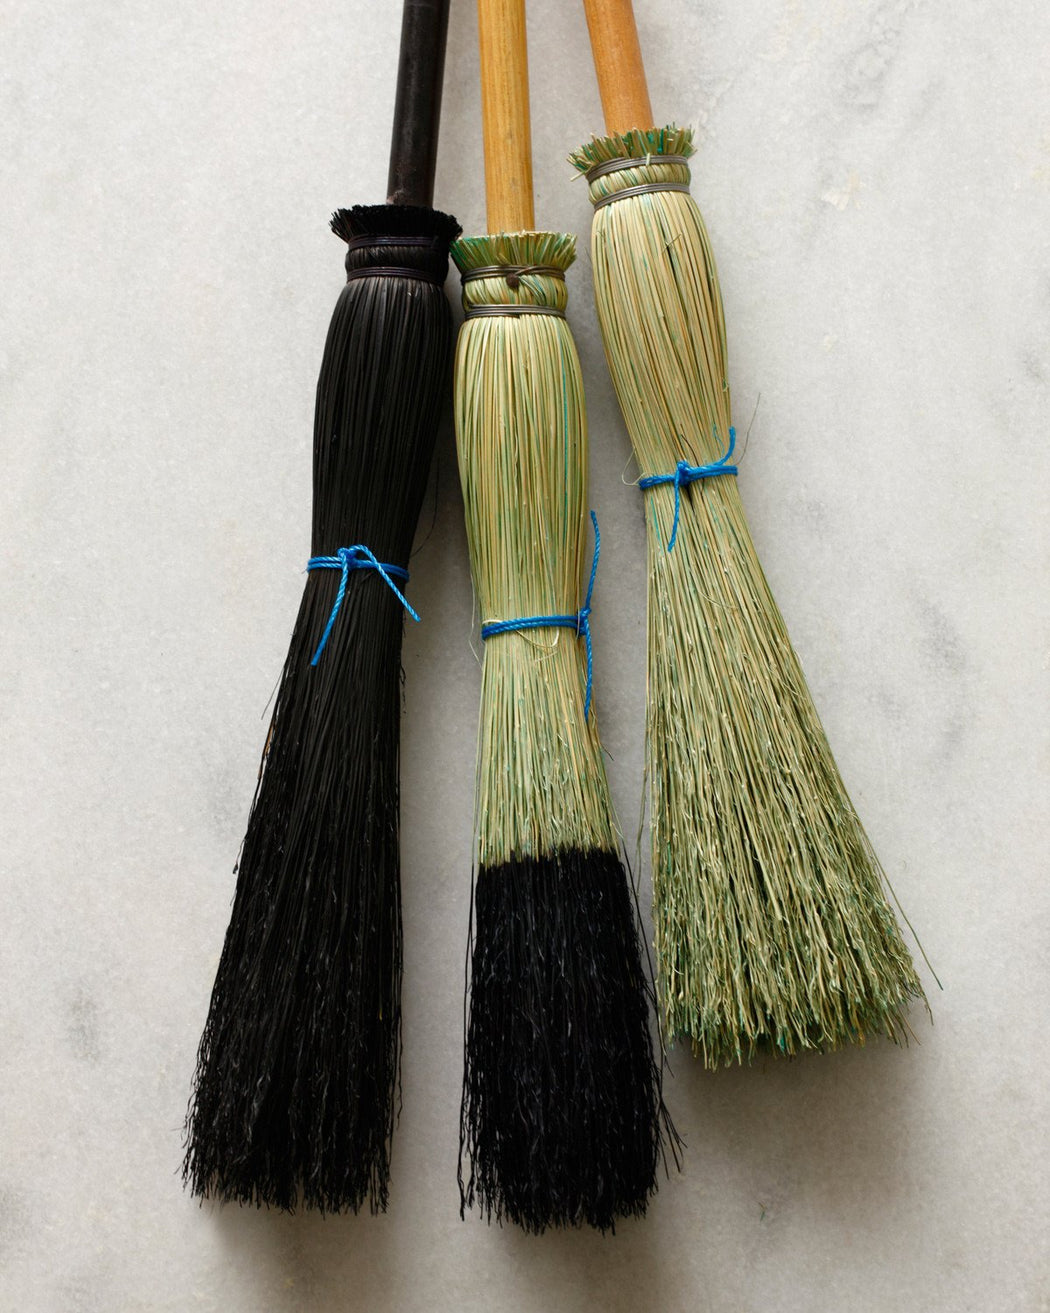 Fireplace Broom - Kitchen - Lostine